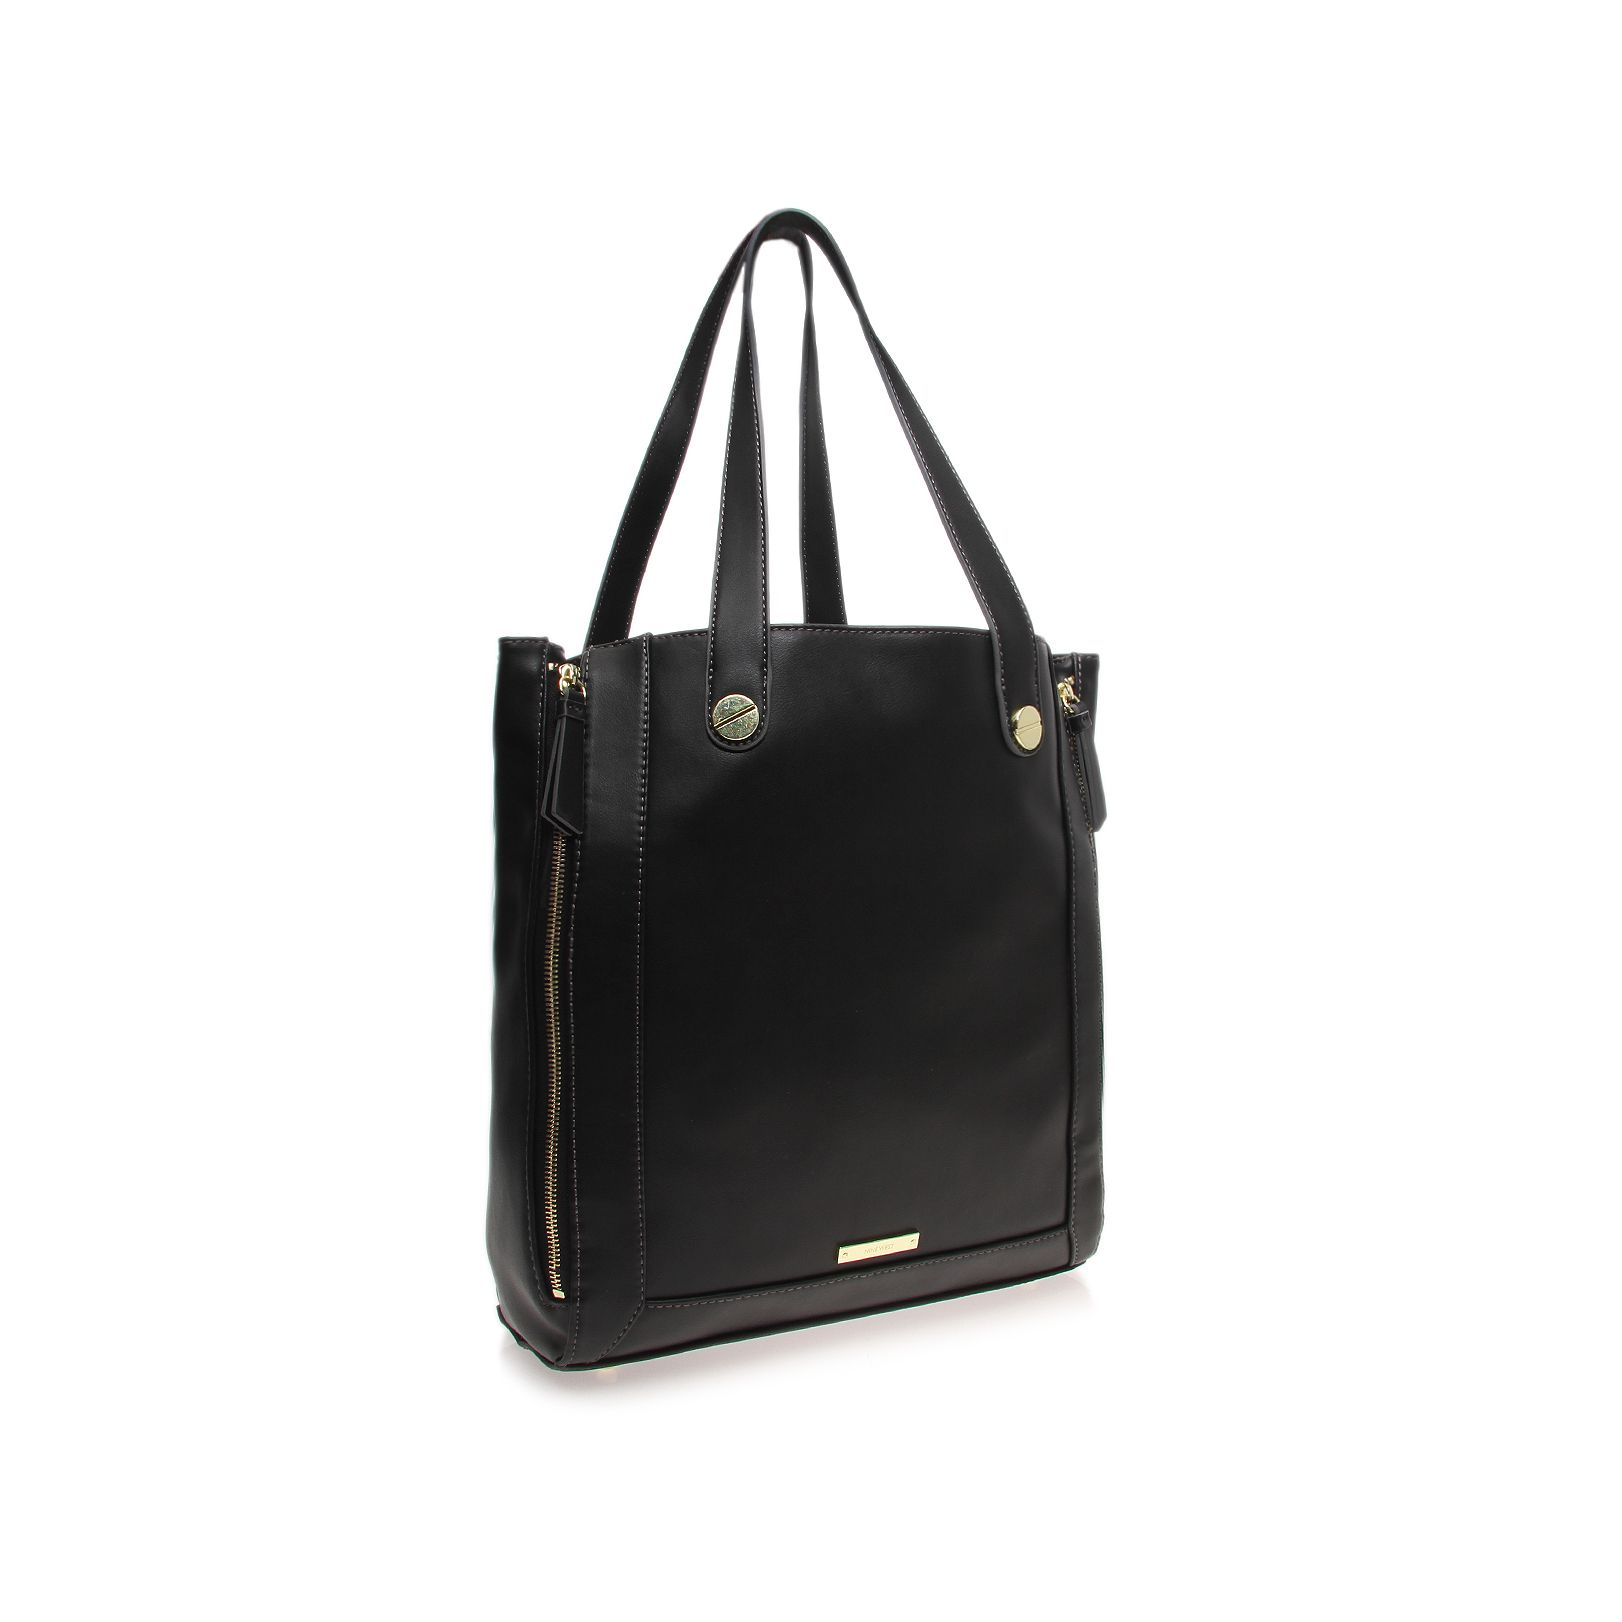 Rangles black tote bag